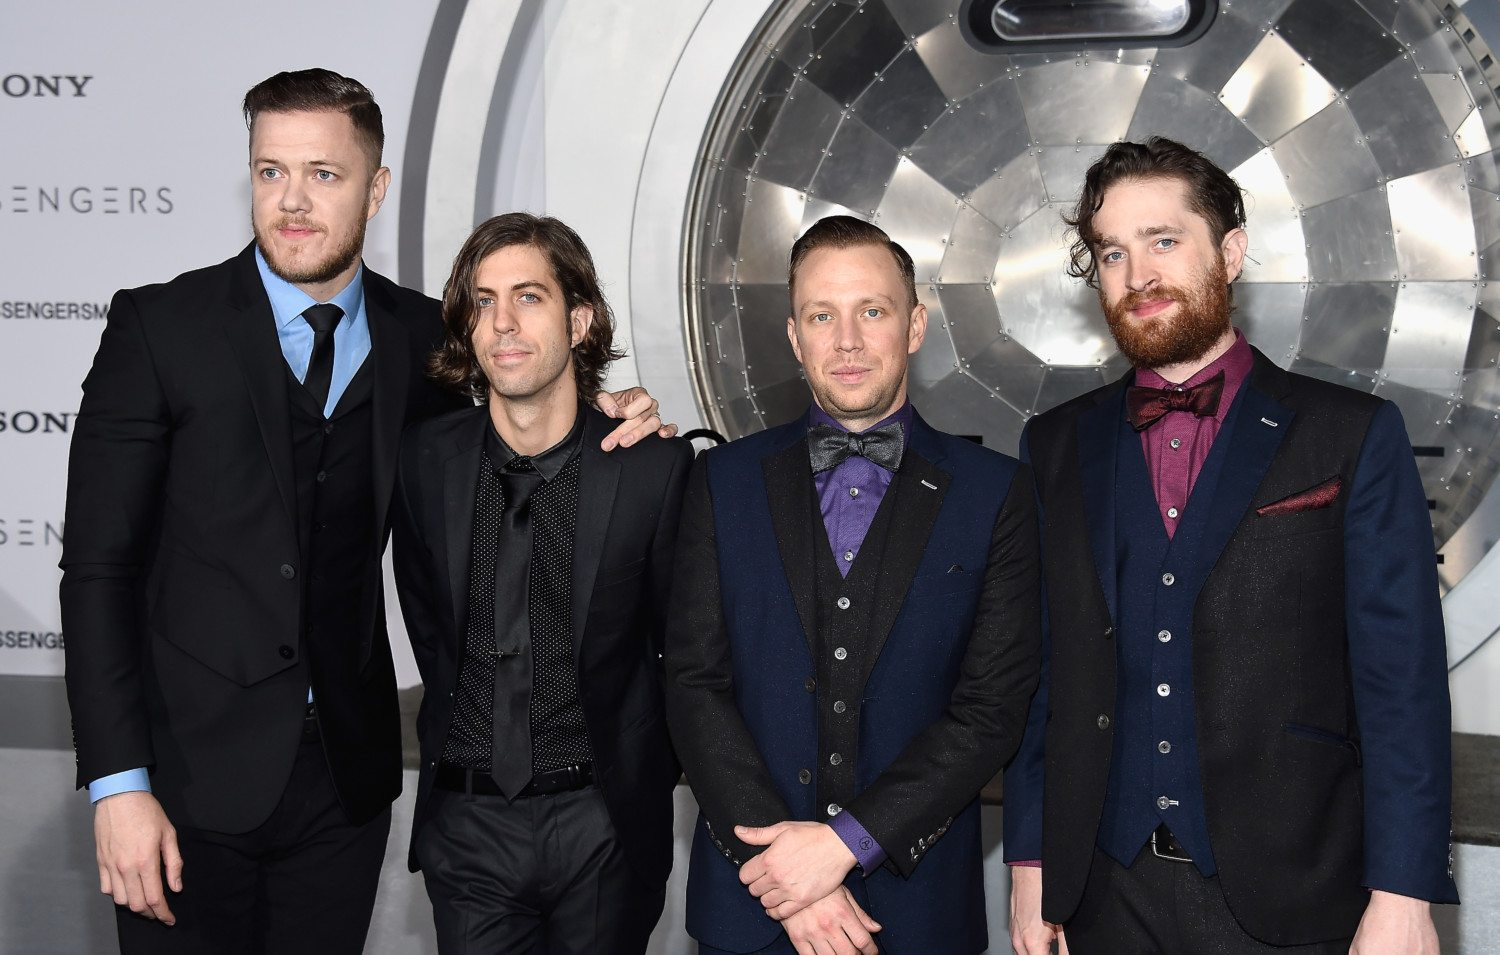 imagine dragons photo